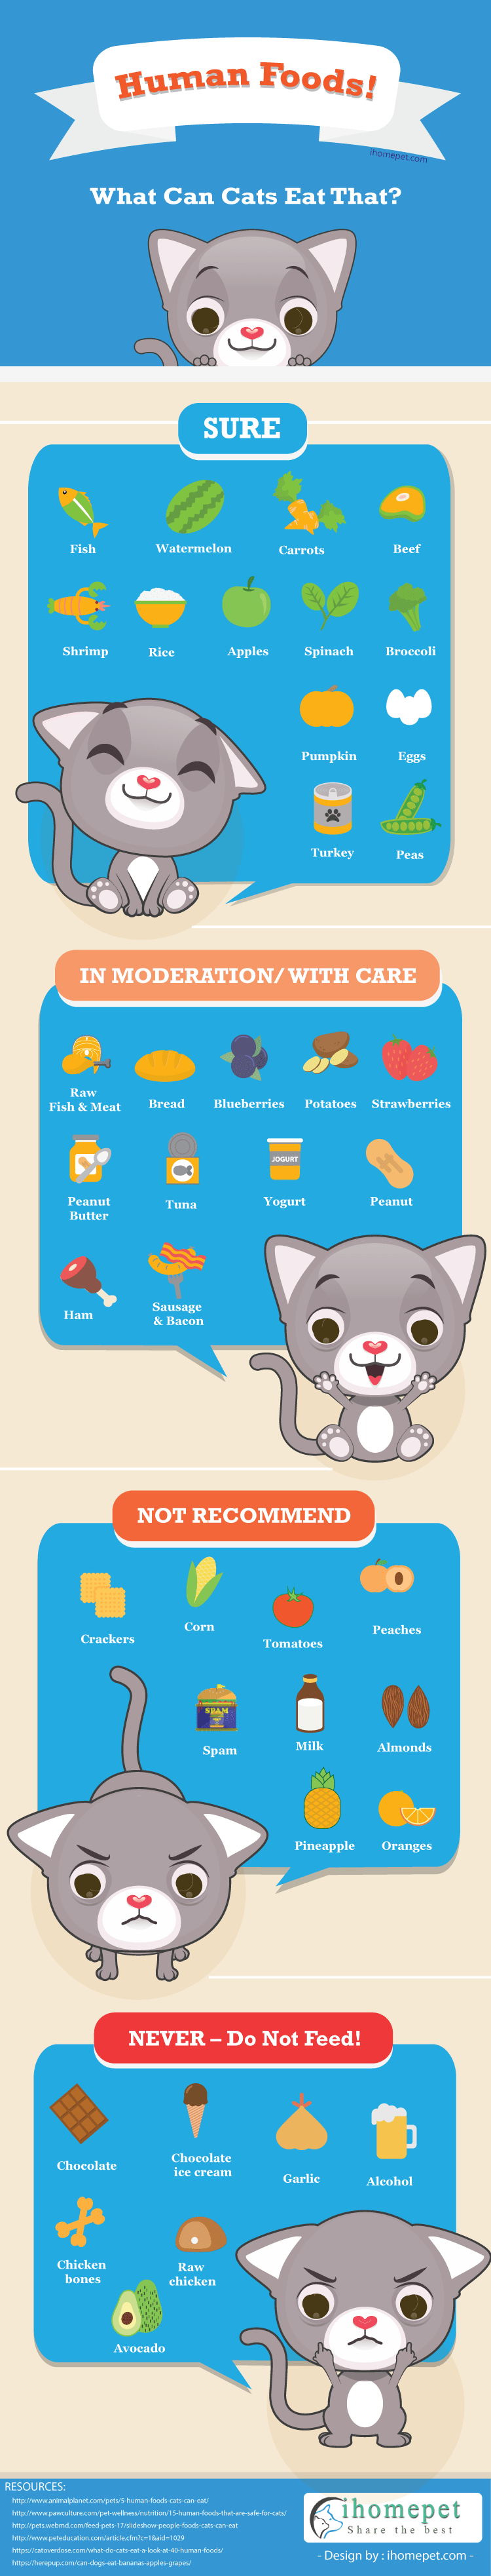 What Human Foods Can Cats Eat?